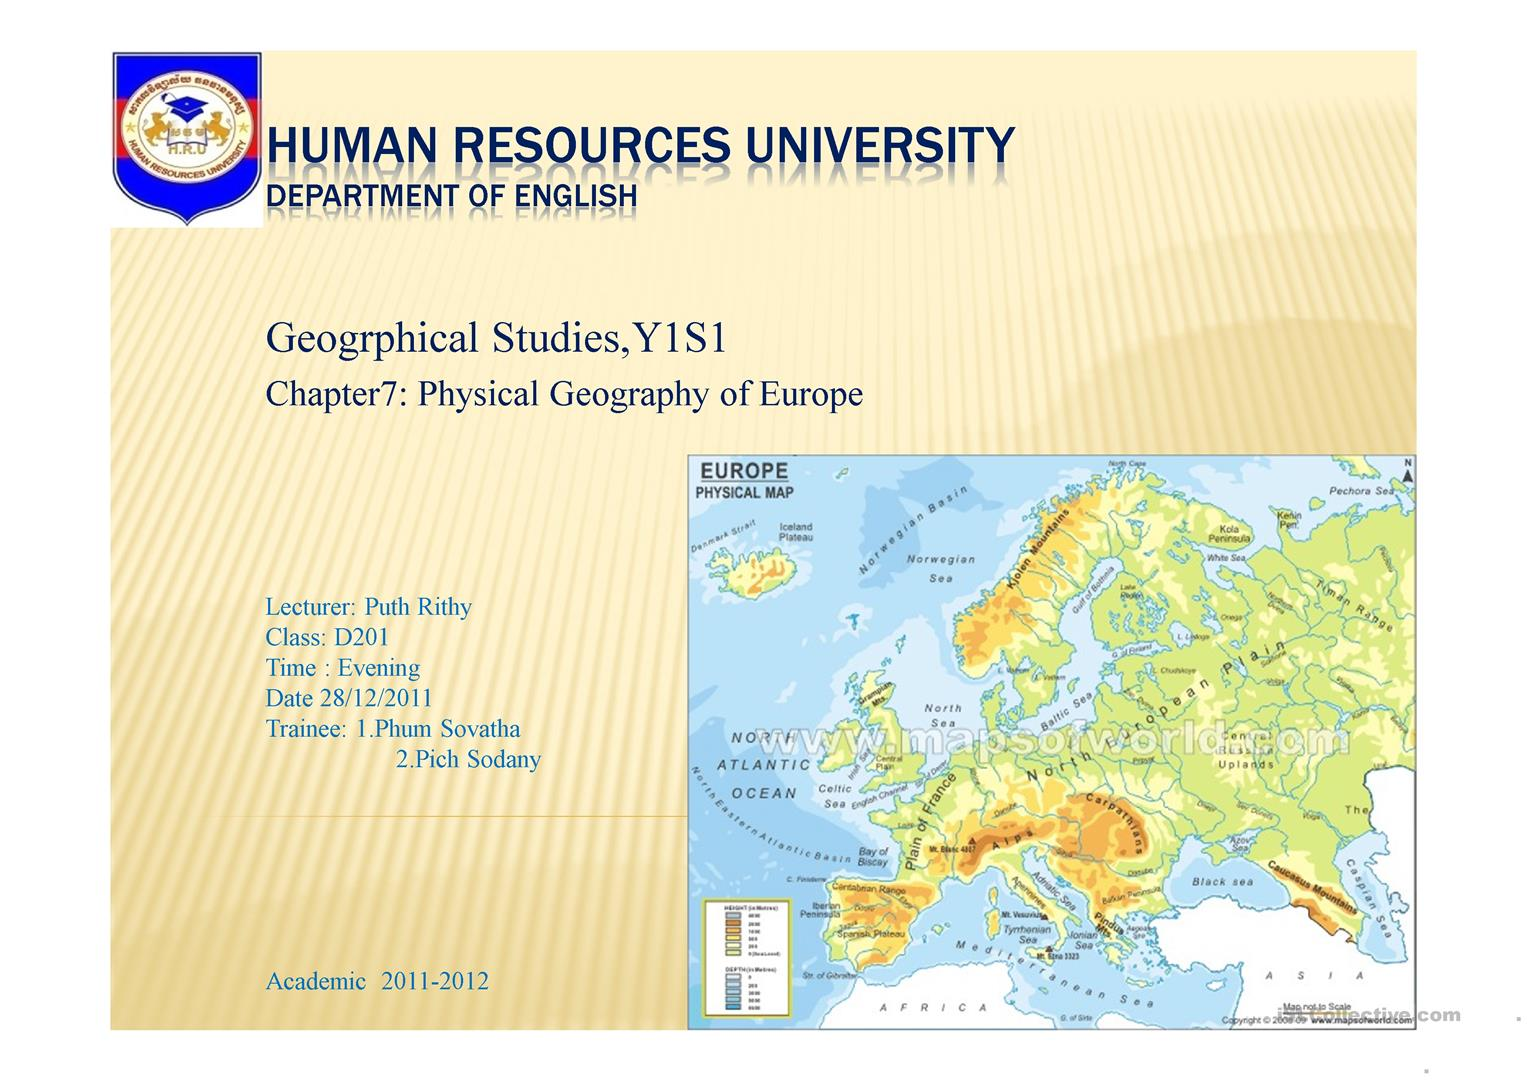 The Physical Geography of Europe, ppt worksheet   Free ESL ...